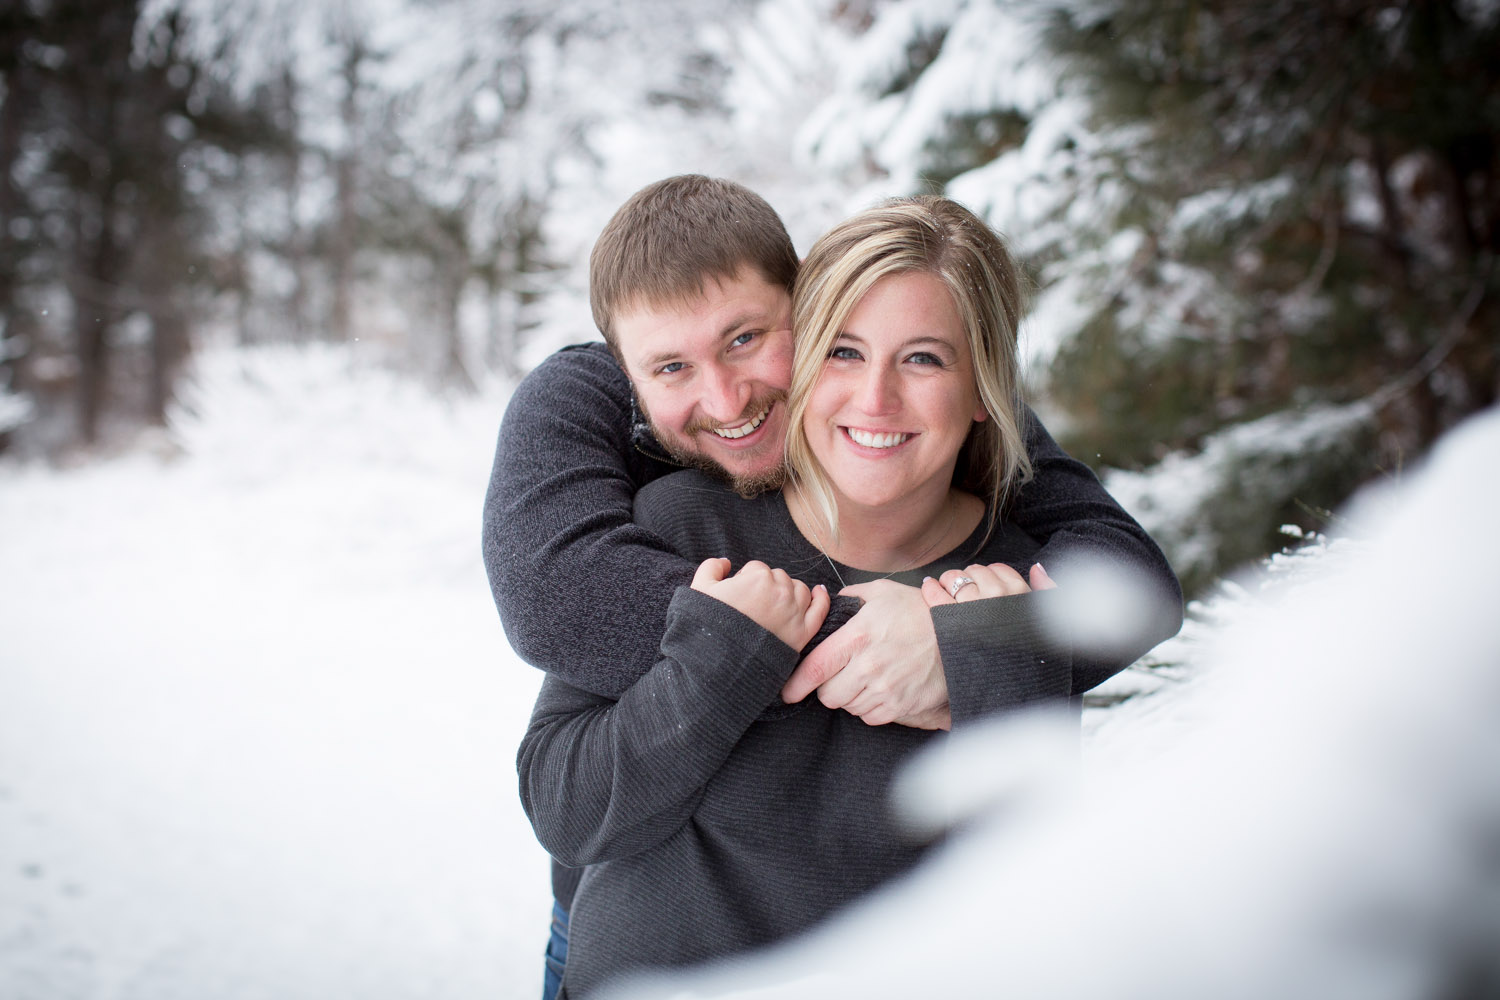 12-bunker-hill-regional-park-winter-wonderland-minnesota-engagement-photographer-snowy-day-fun-photo-session-mahonen-photography.jpg